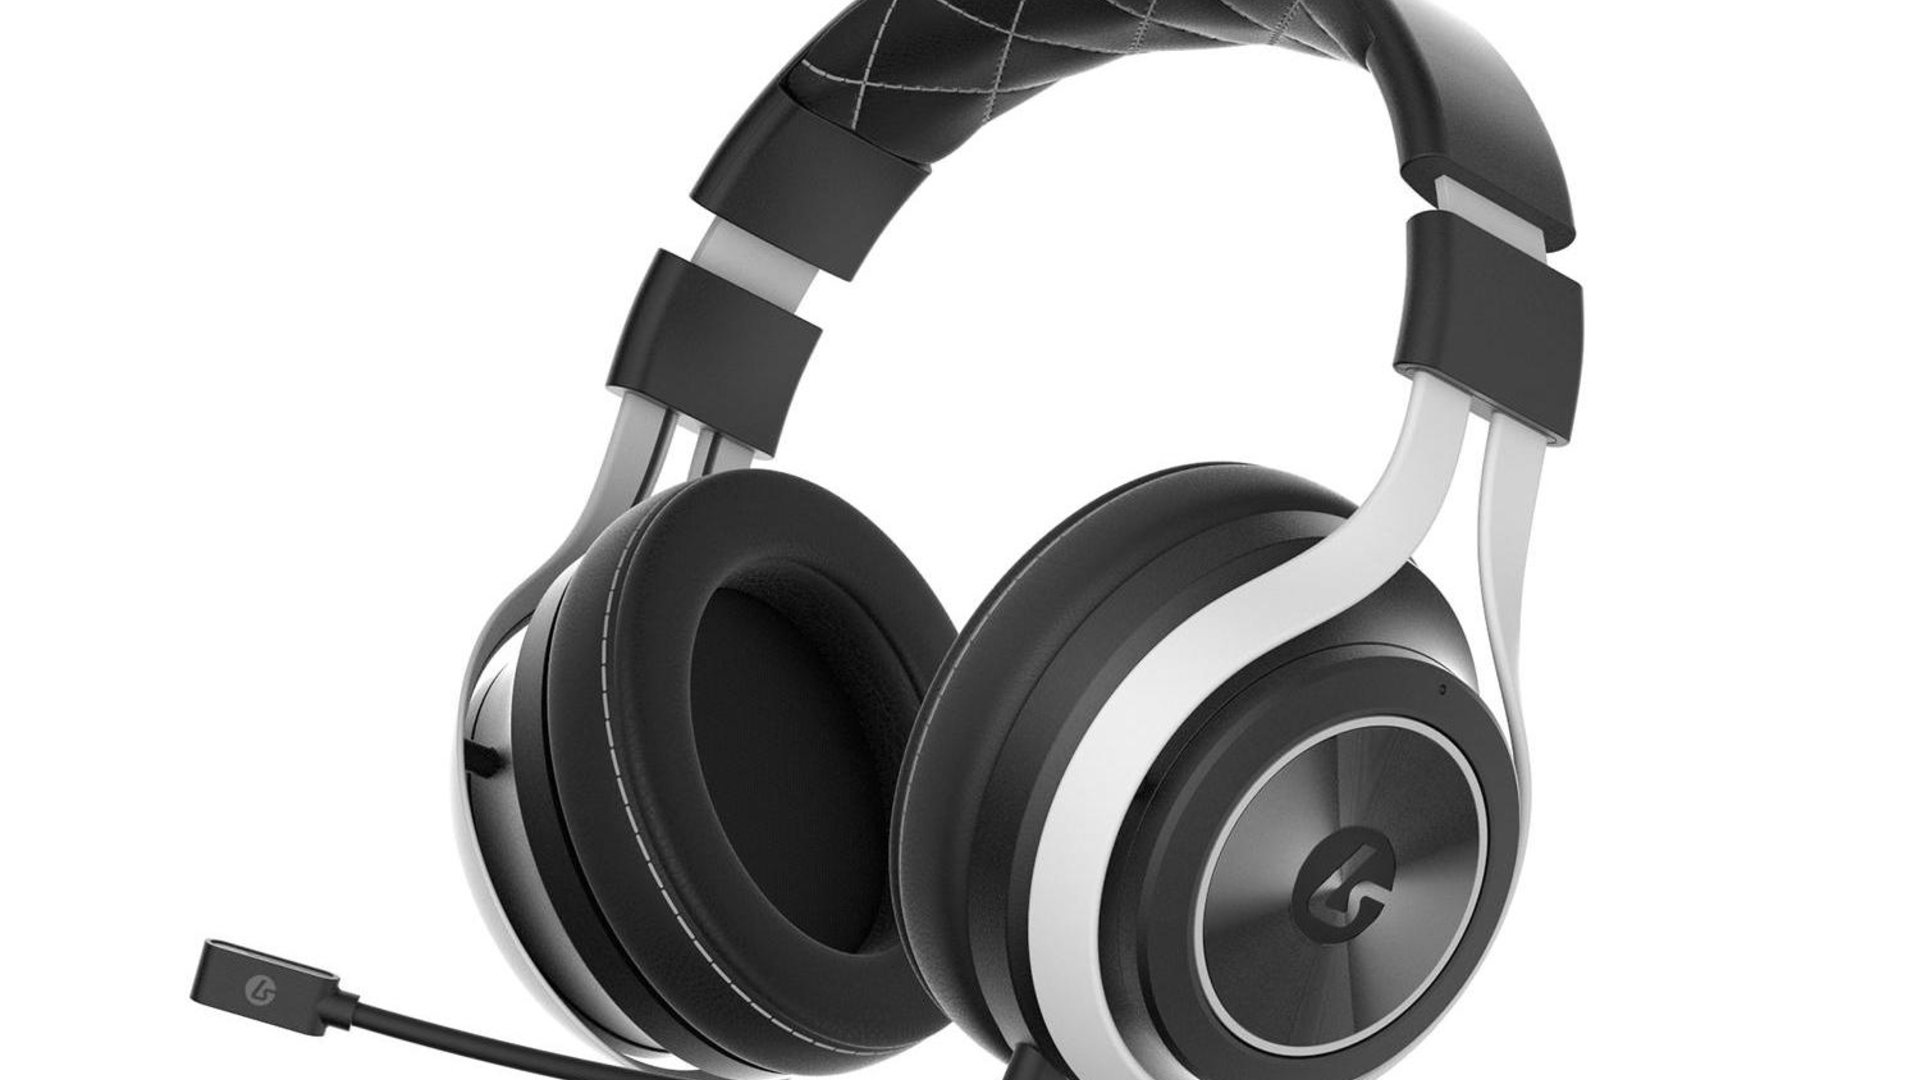 New Headset Pairs With An Xbox One Just Like A Controller Stereo Adapter Usb Cable